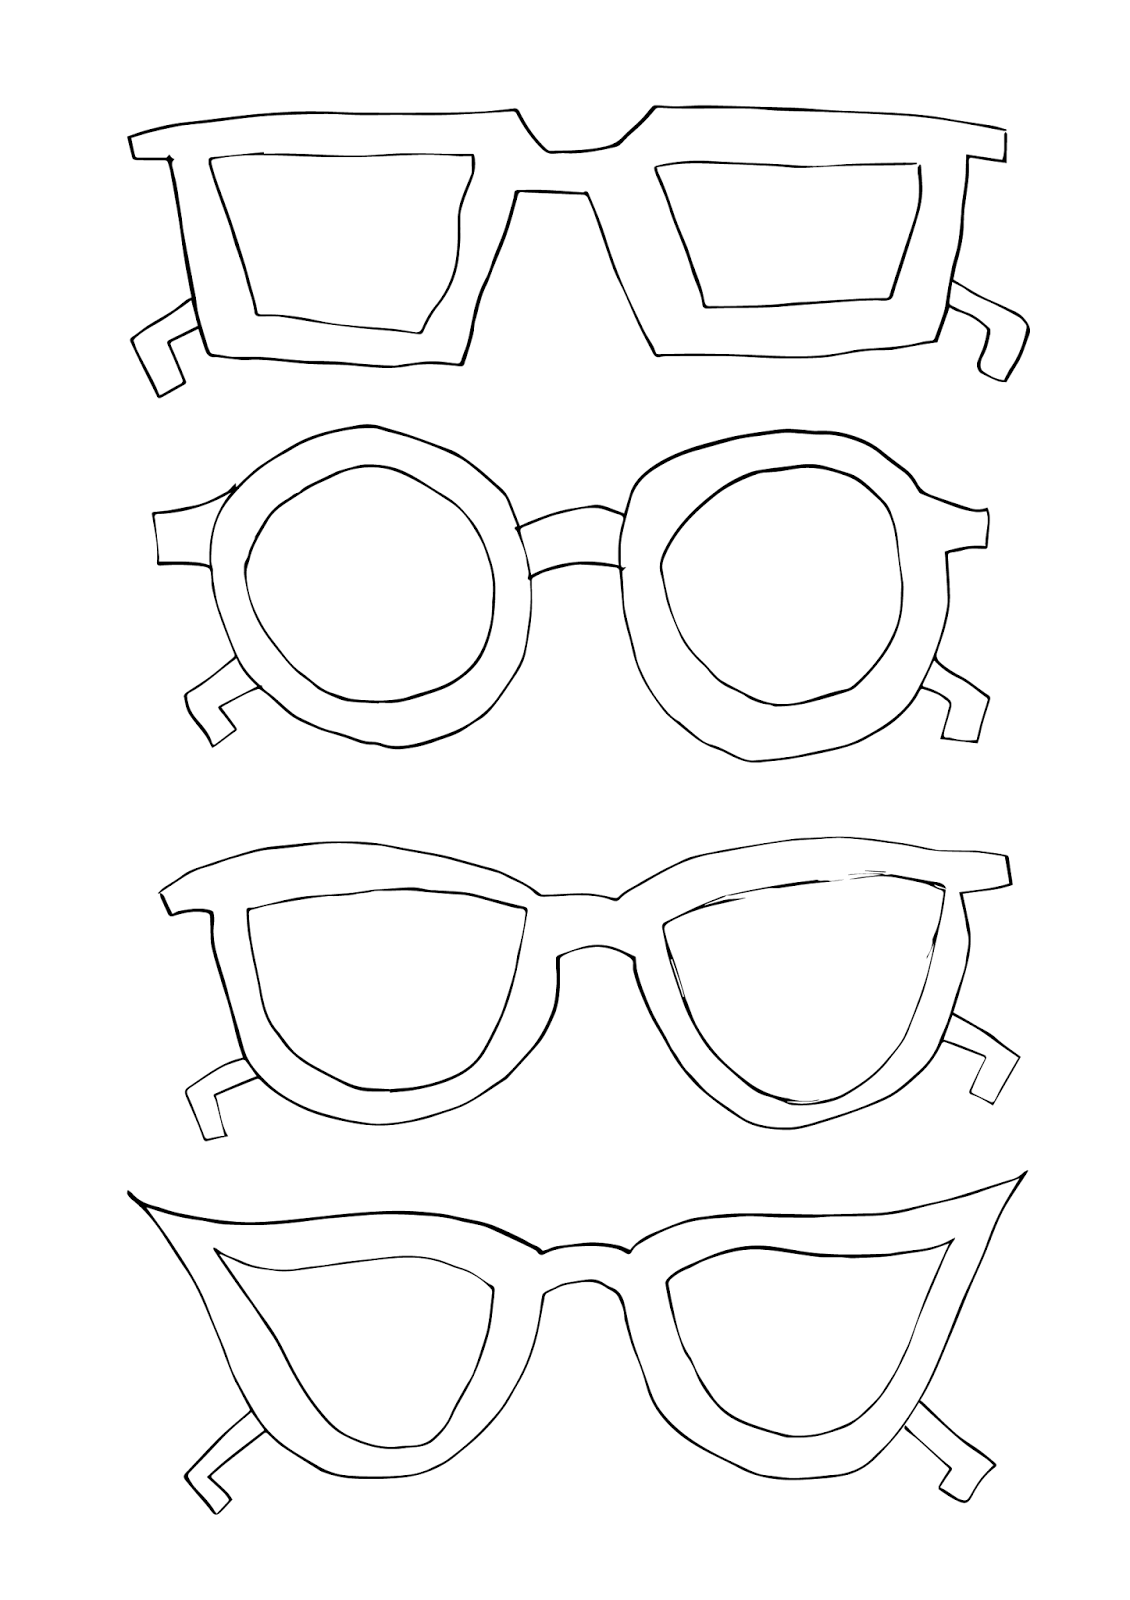 Sunglasses Template Printable David Simchi Levi